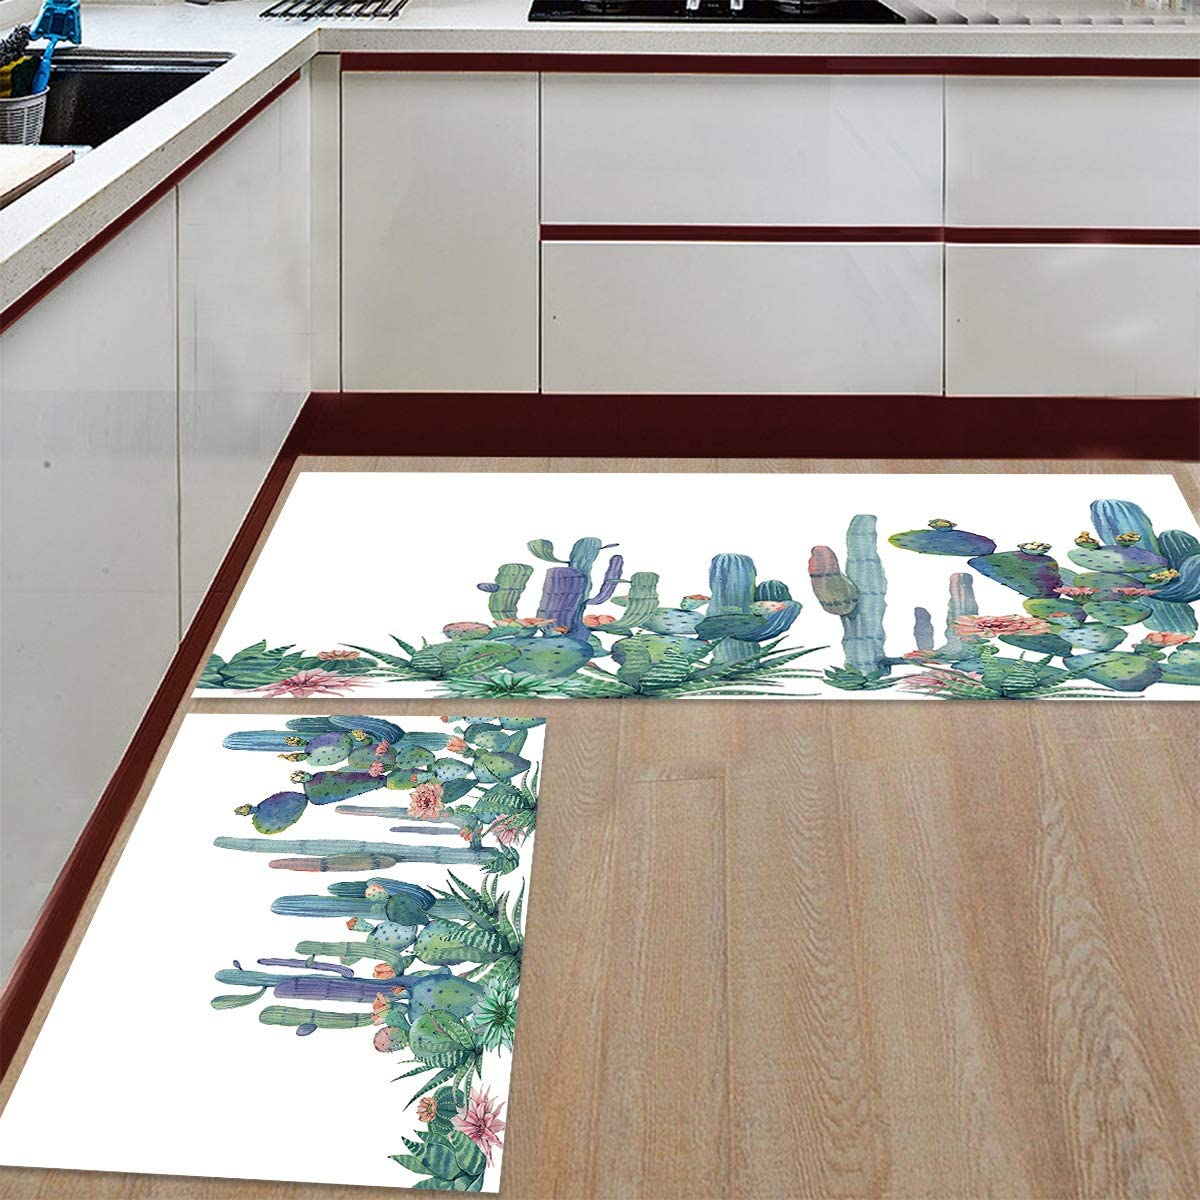 Prime Leader Kitchen Mat and Rugs Very popular 2 Max 41% OFF Dur Cactus Set of Tropical